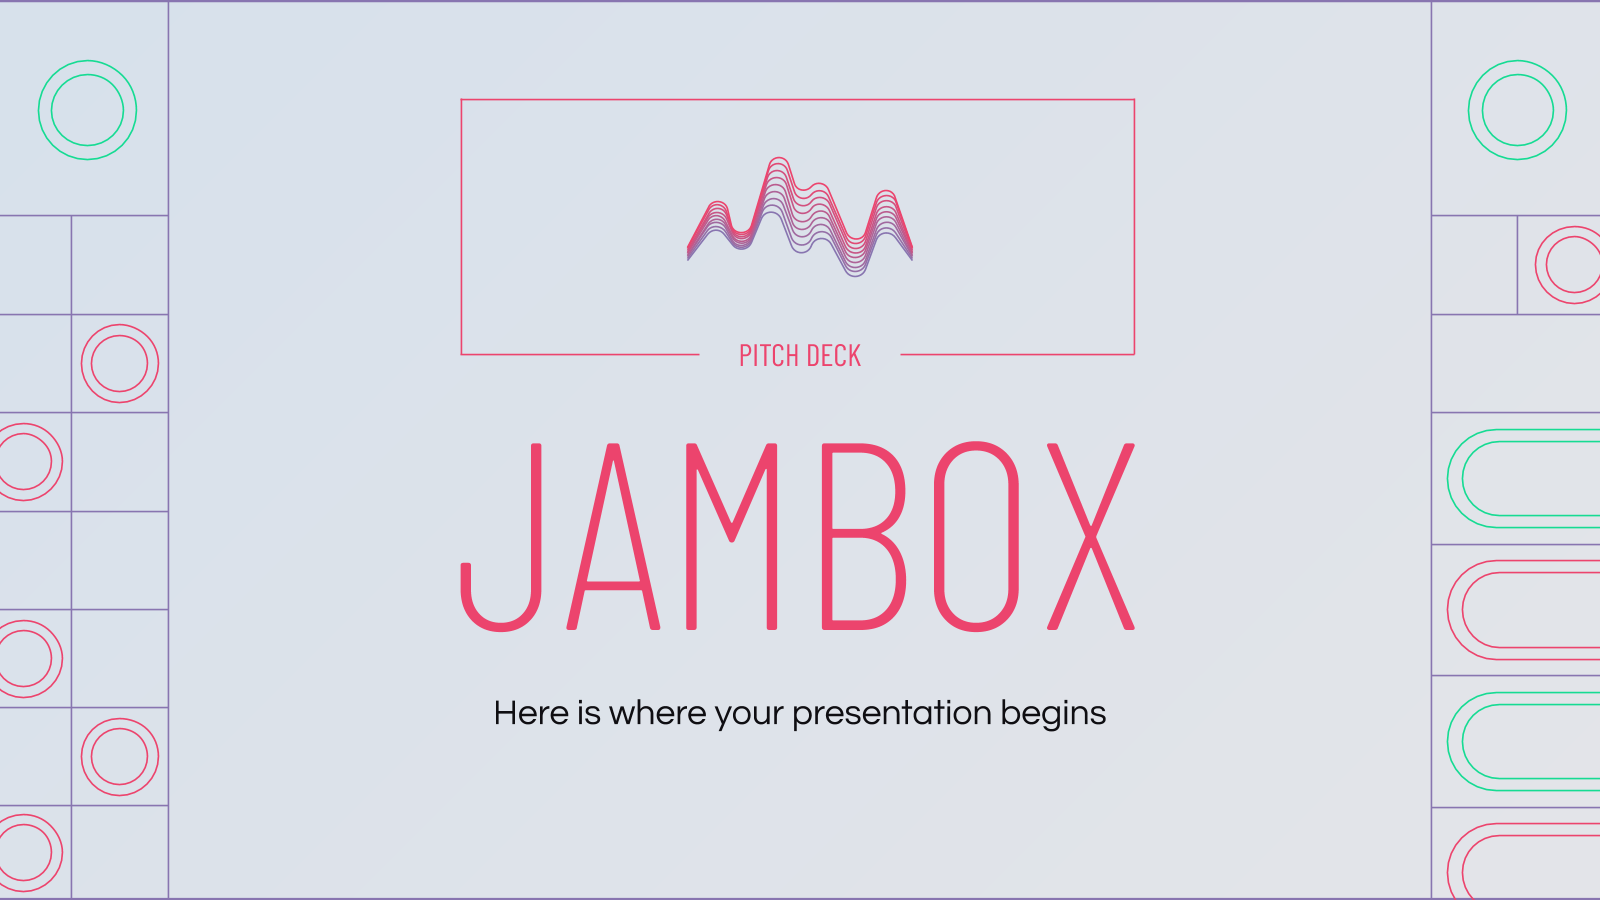 Jambox Pitch Deck presentation template